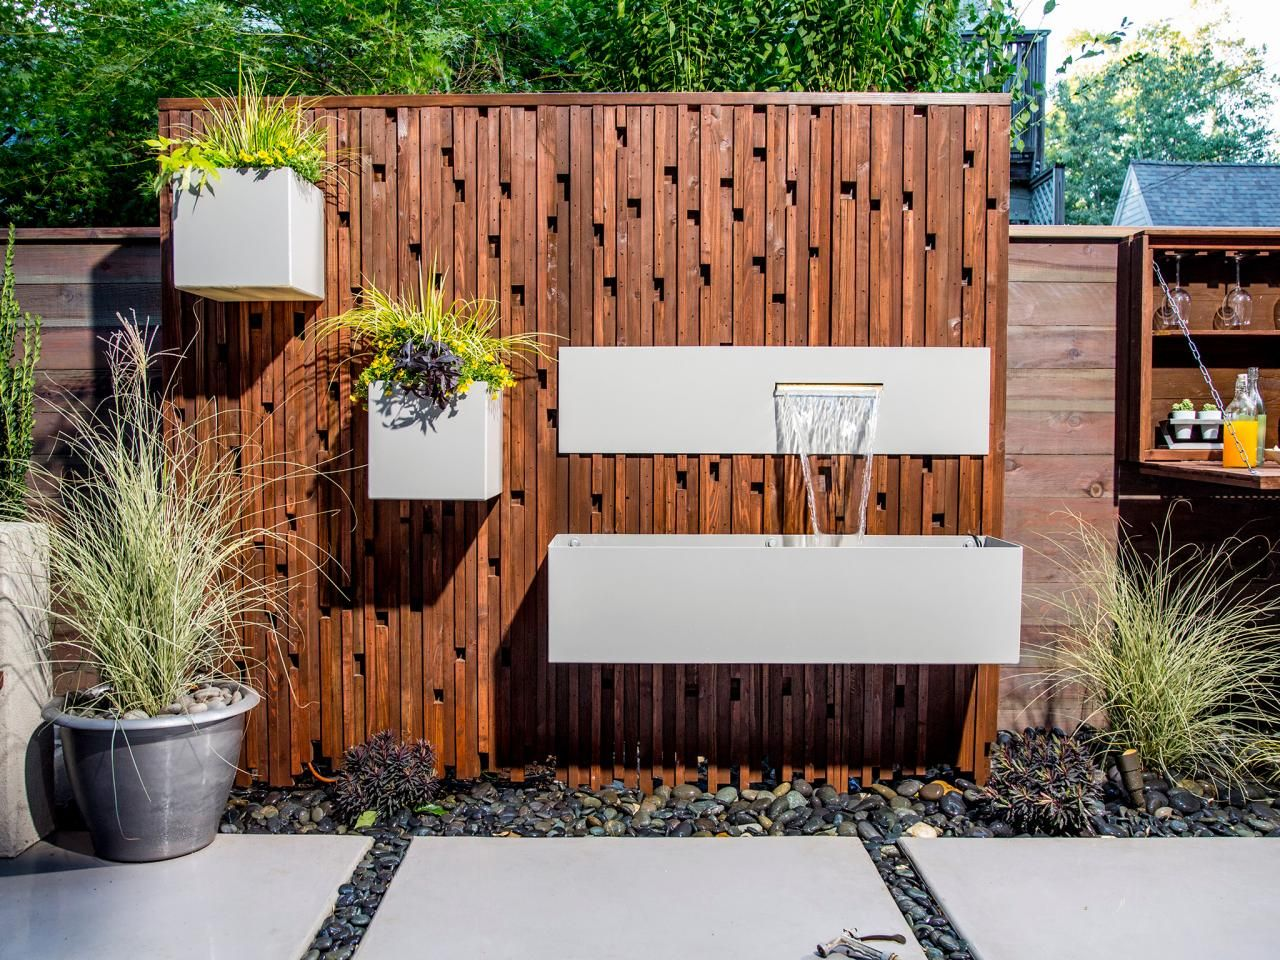 Diy water feature wall - 17 Best Images About Patio Waterfalls On Pinterest Natural Swimming Pools Backyards And Wonderland